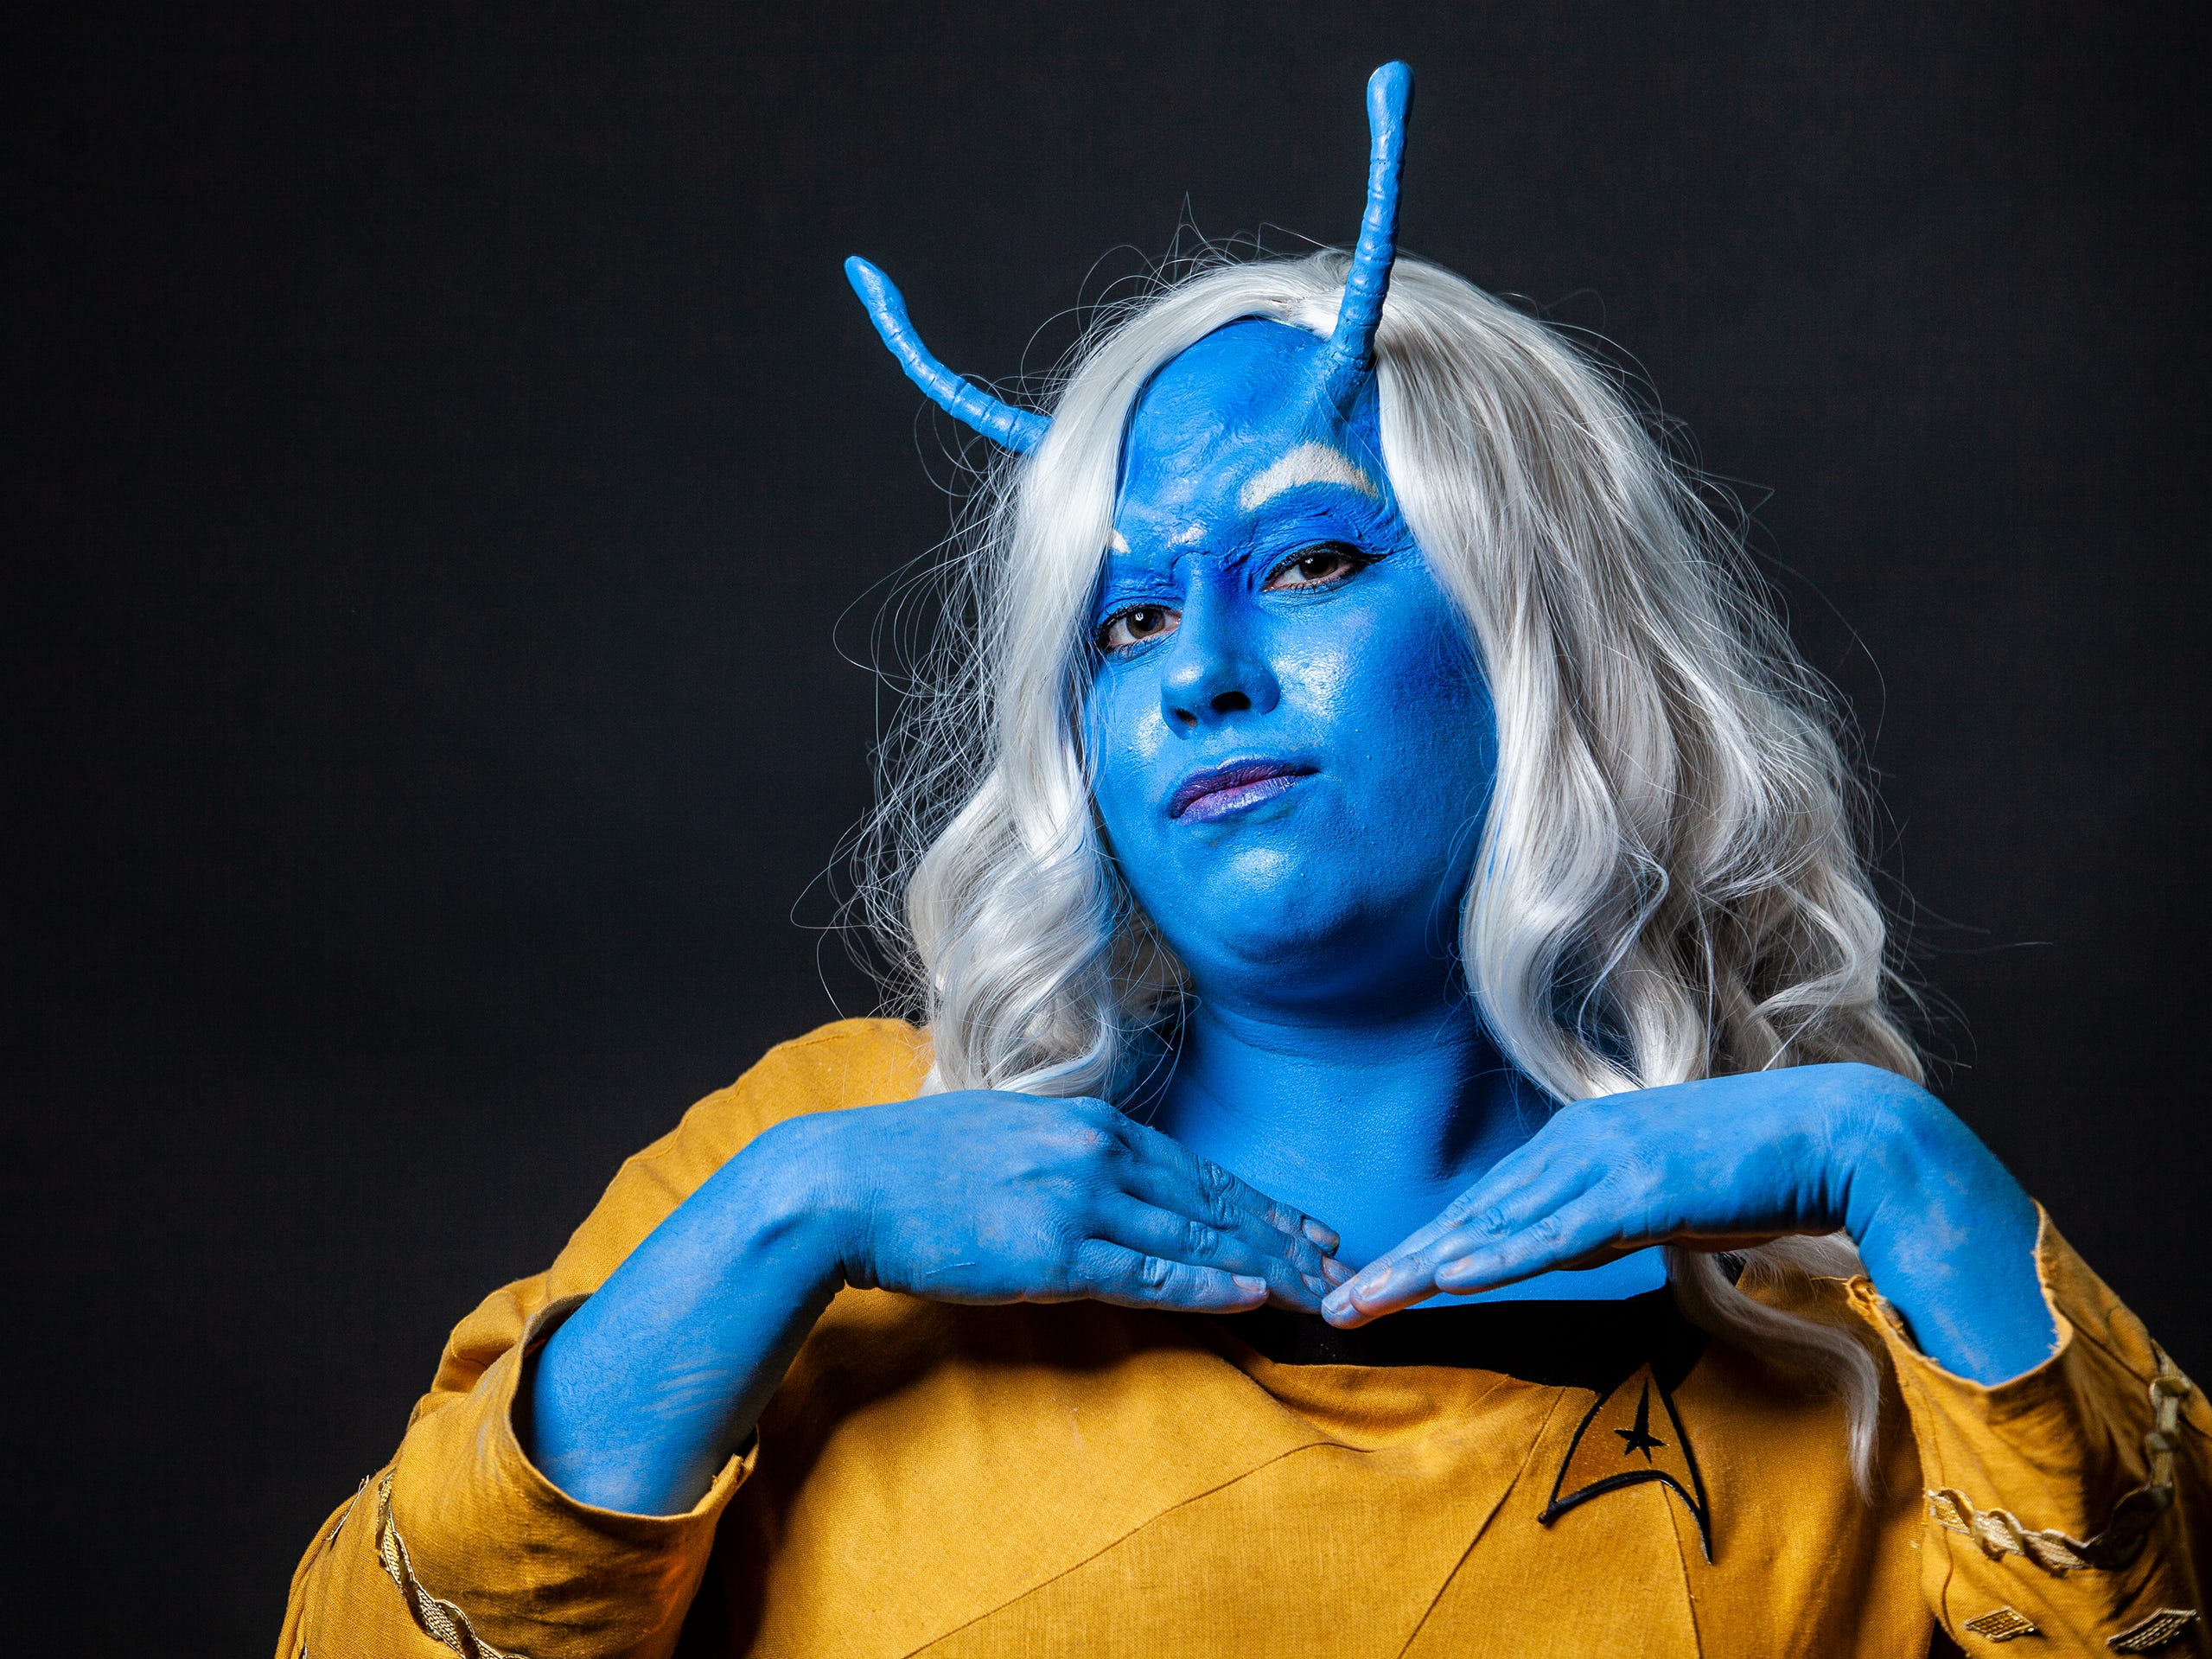 Sarah Stanfield poses as an Andorian for the Louisville Supercon at the Kentucky International Convention Center on Saturday, Dec. 1, 2018.